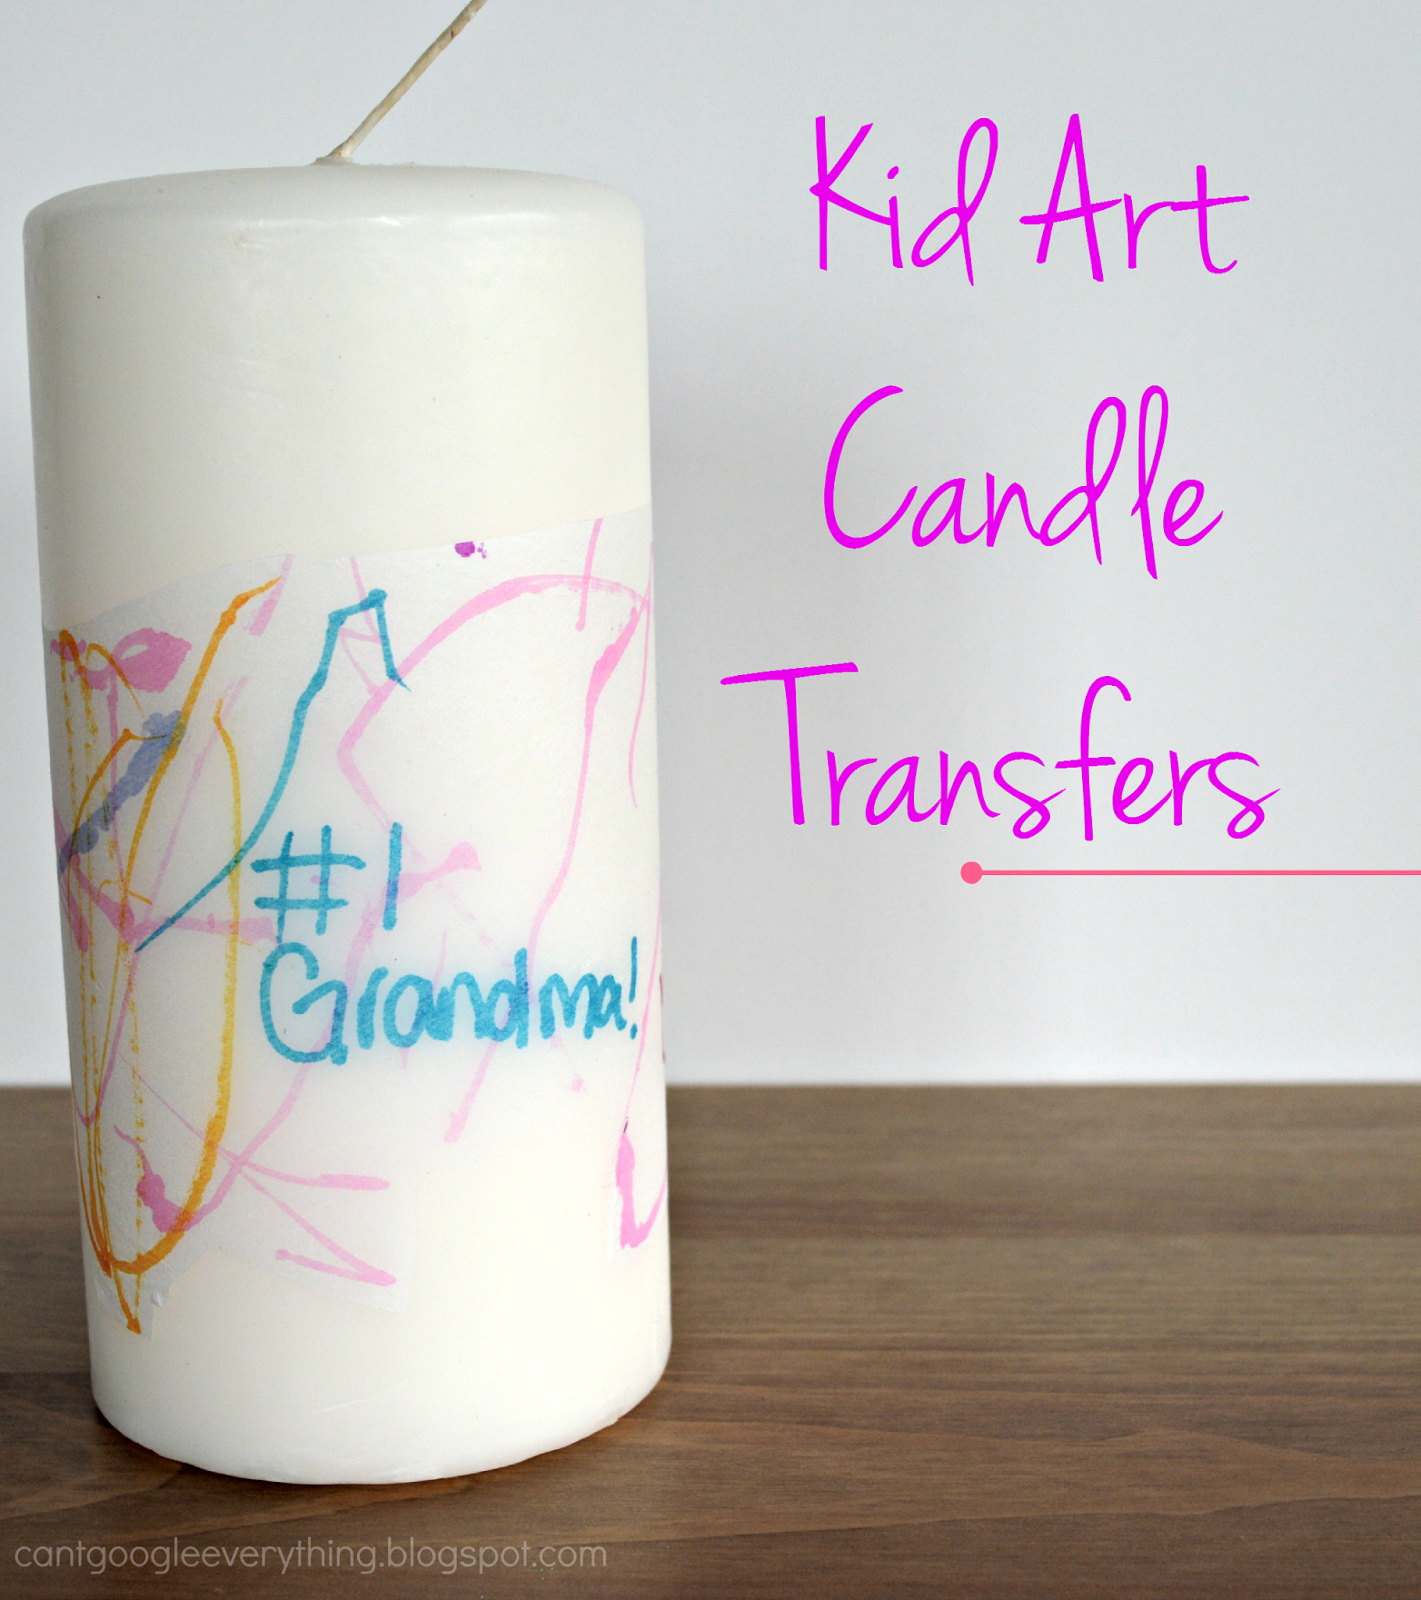 Diy Mothers Day Gifts For Grandma Diy Mother 39s Day Gift Kid Art Candle Transfers Perfect